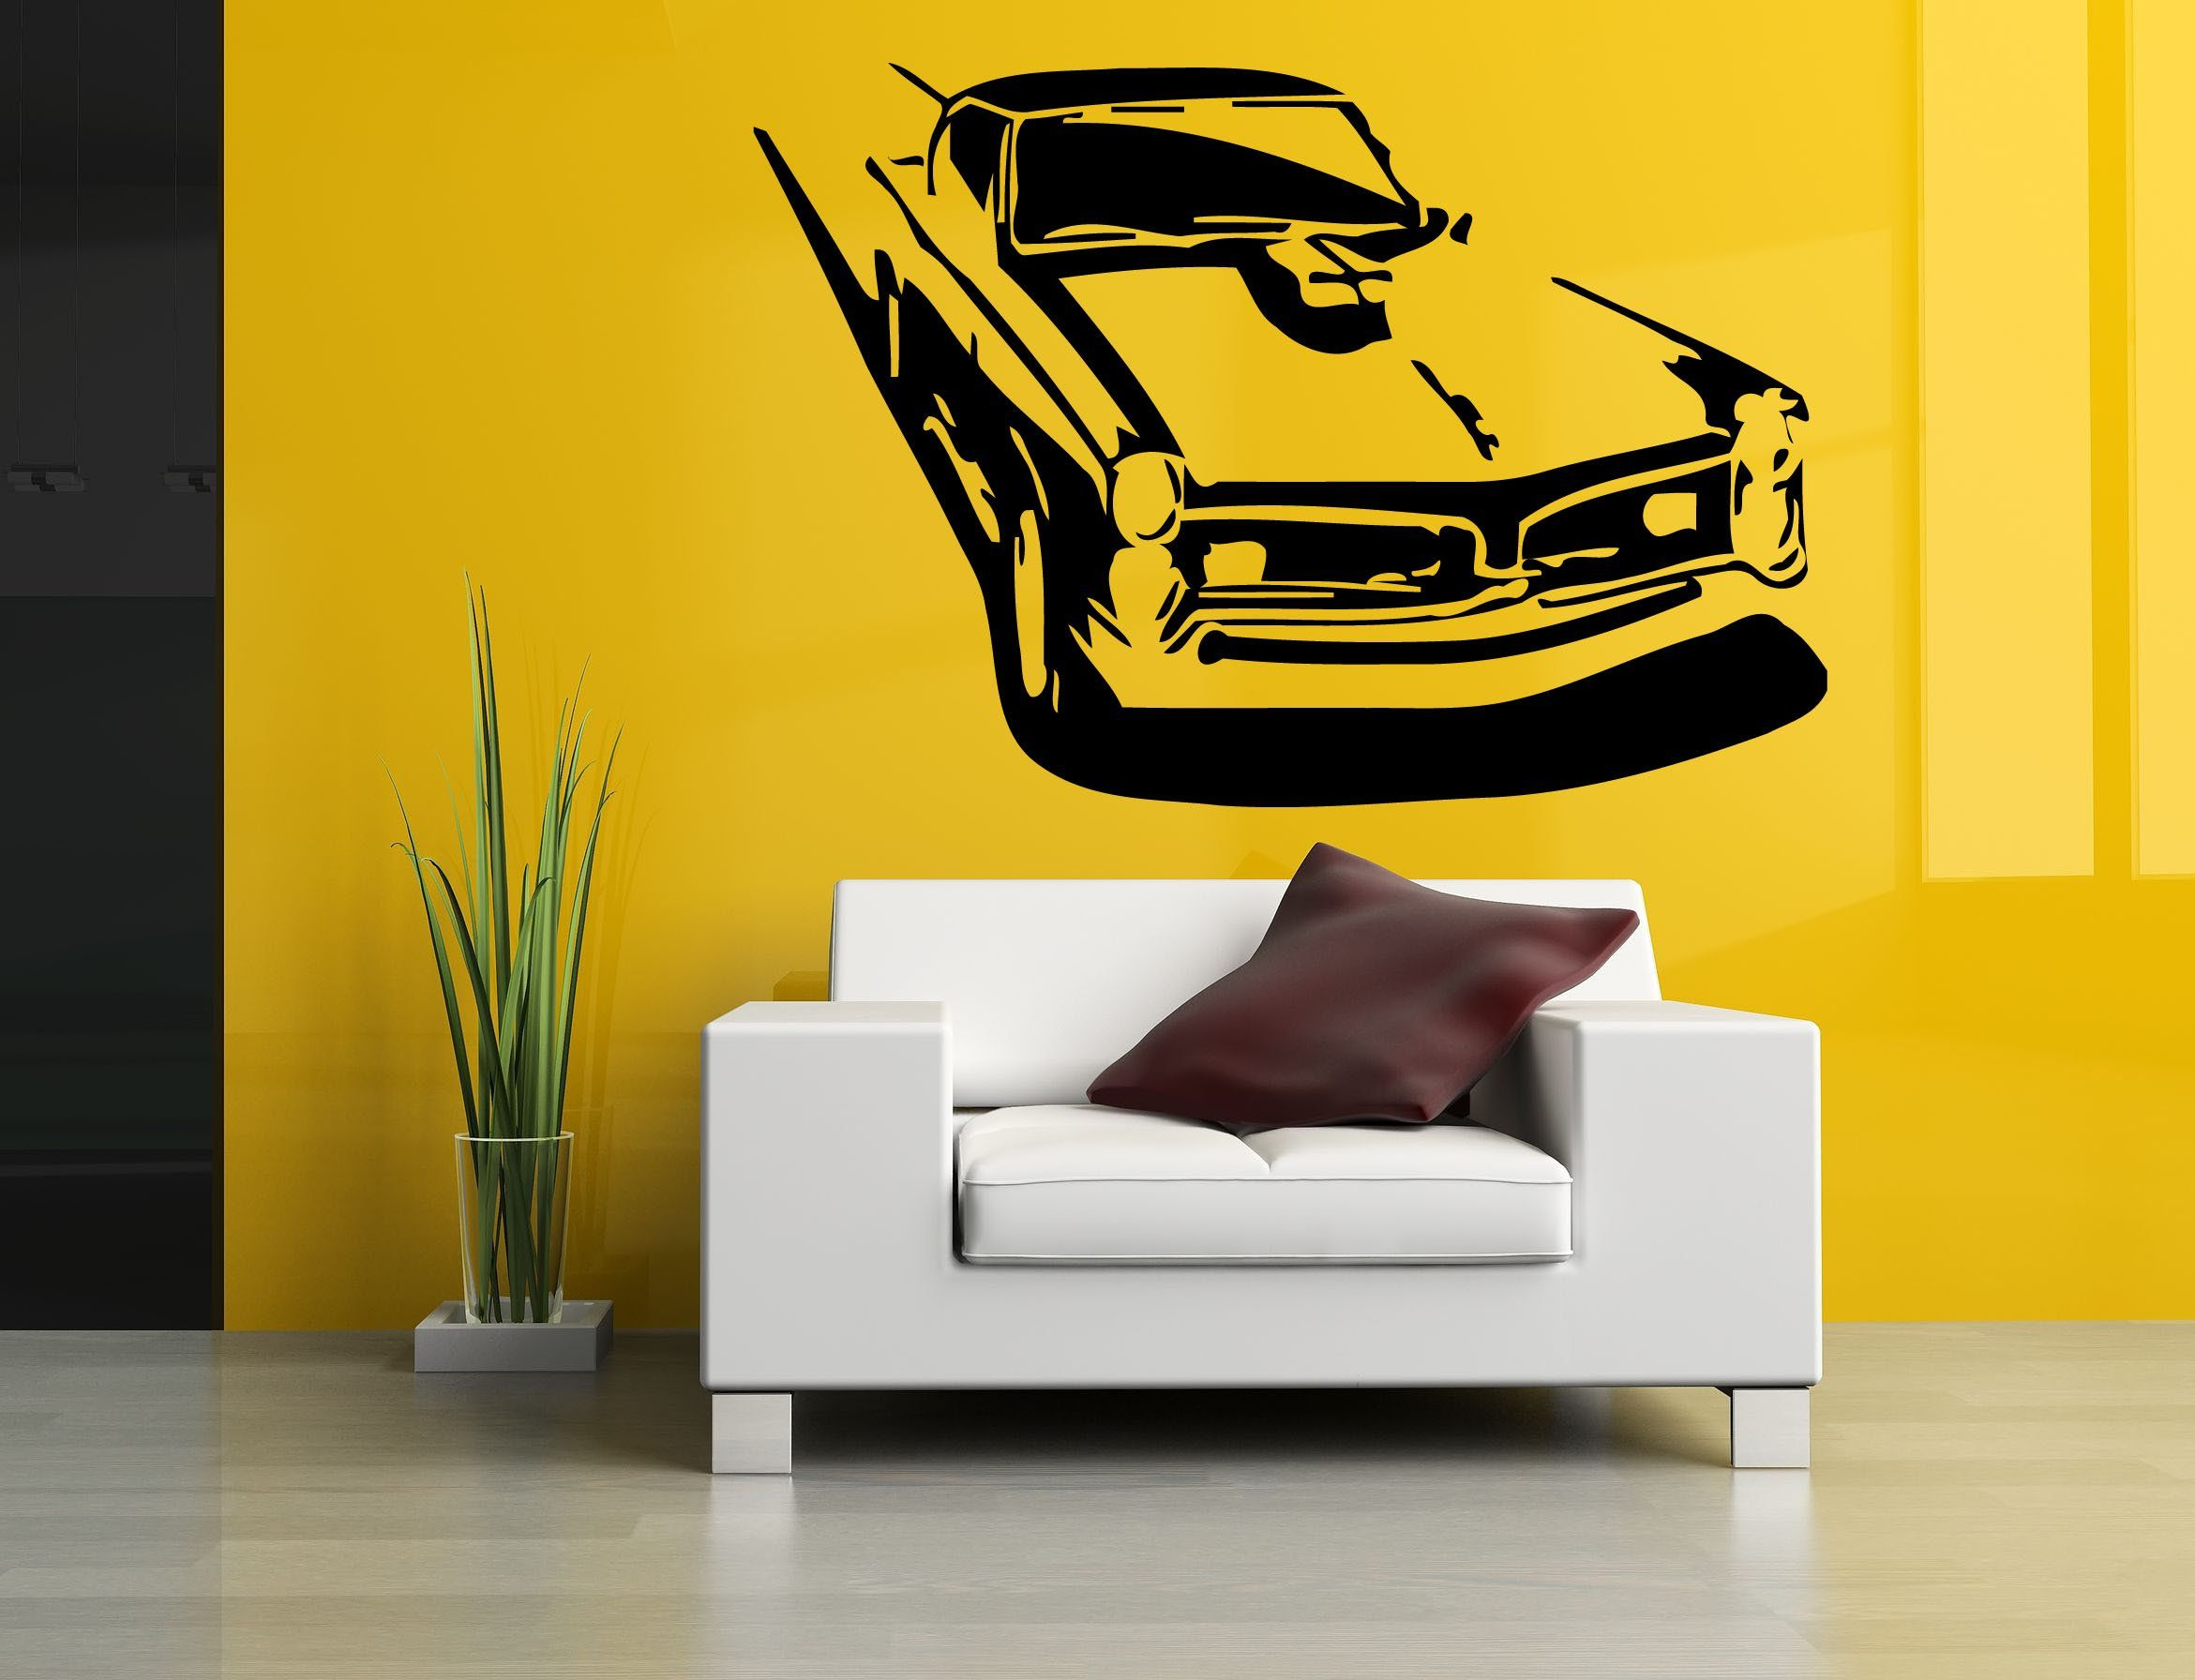 Wall Room Decor Art Vinyl Sticker Mural Decal Antique Car Muscle Big ...